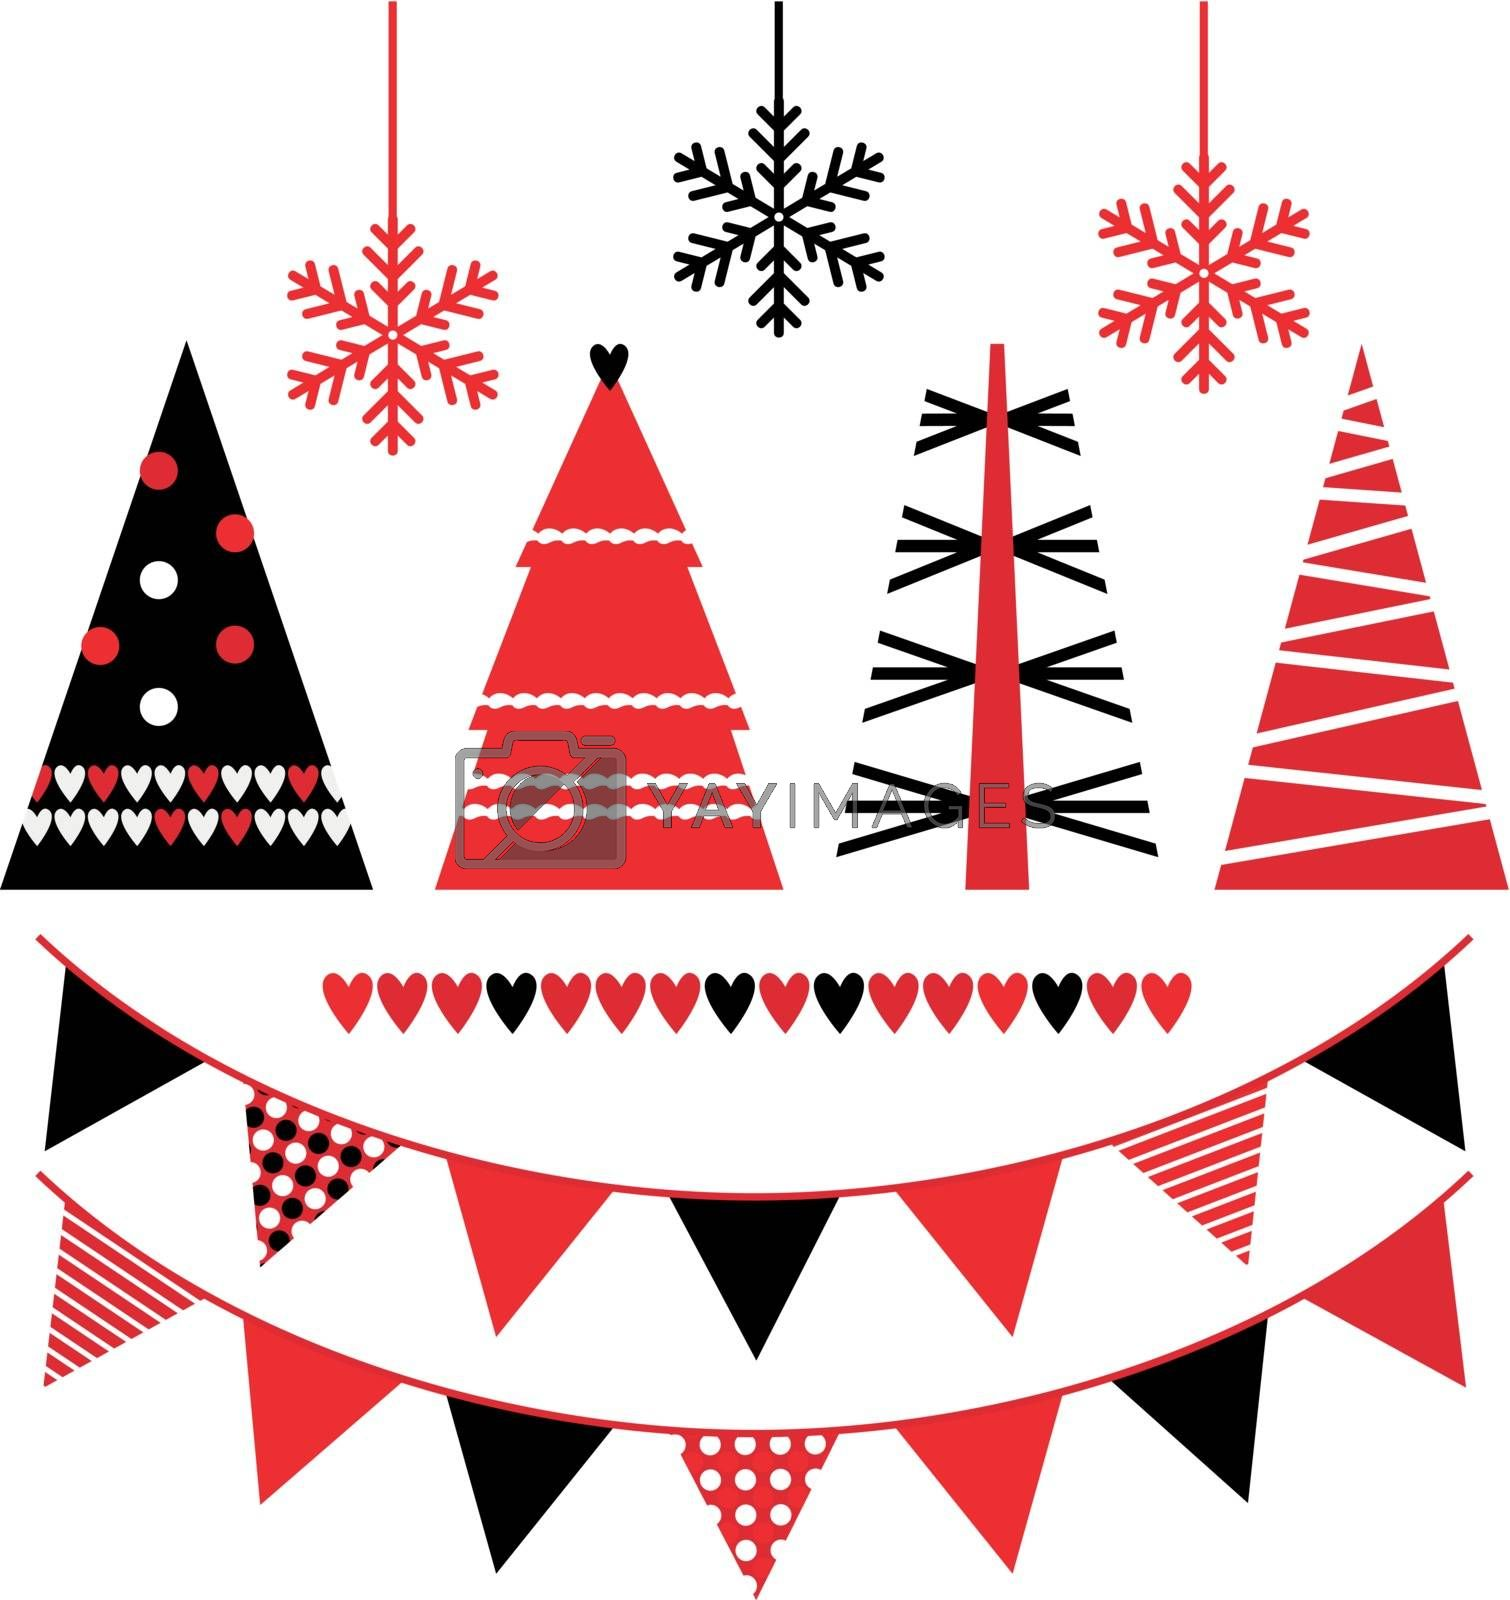 Retro patterned Xmas trees and elements set. Vector